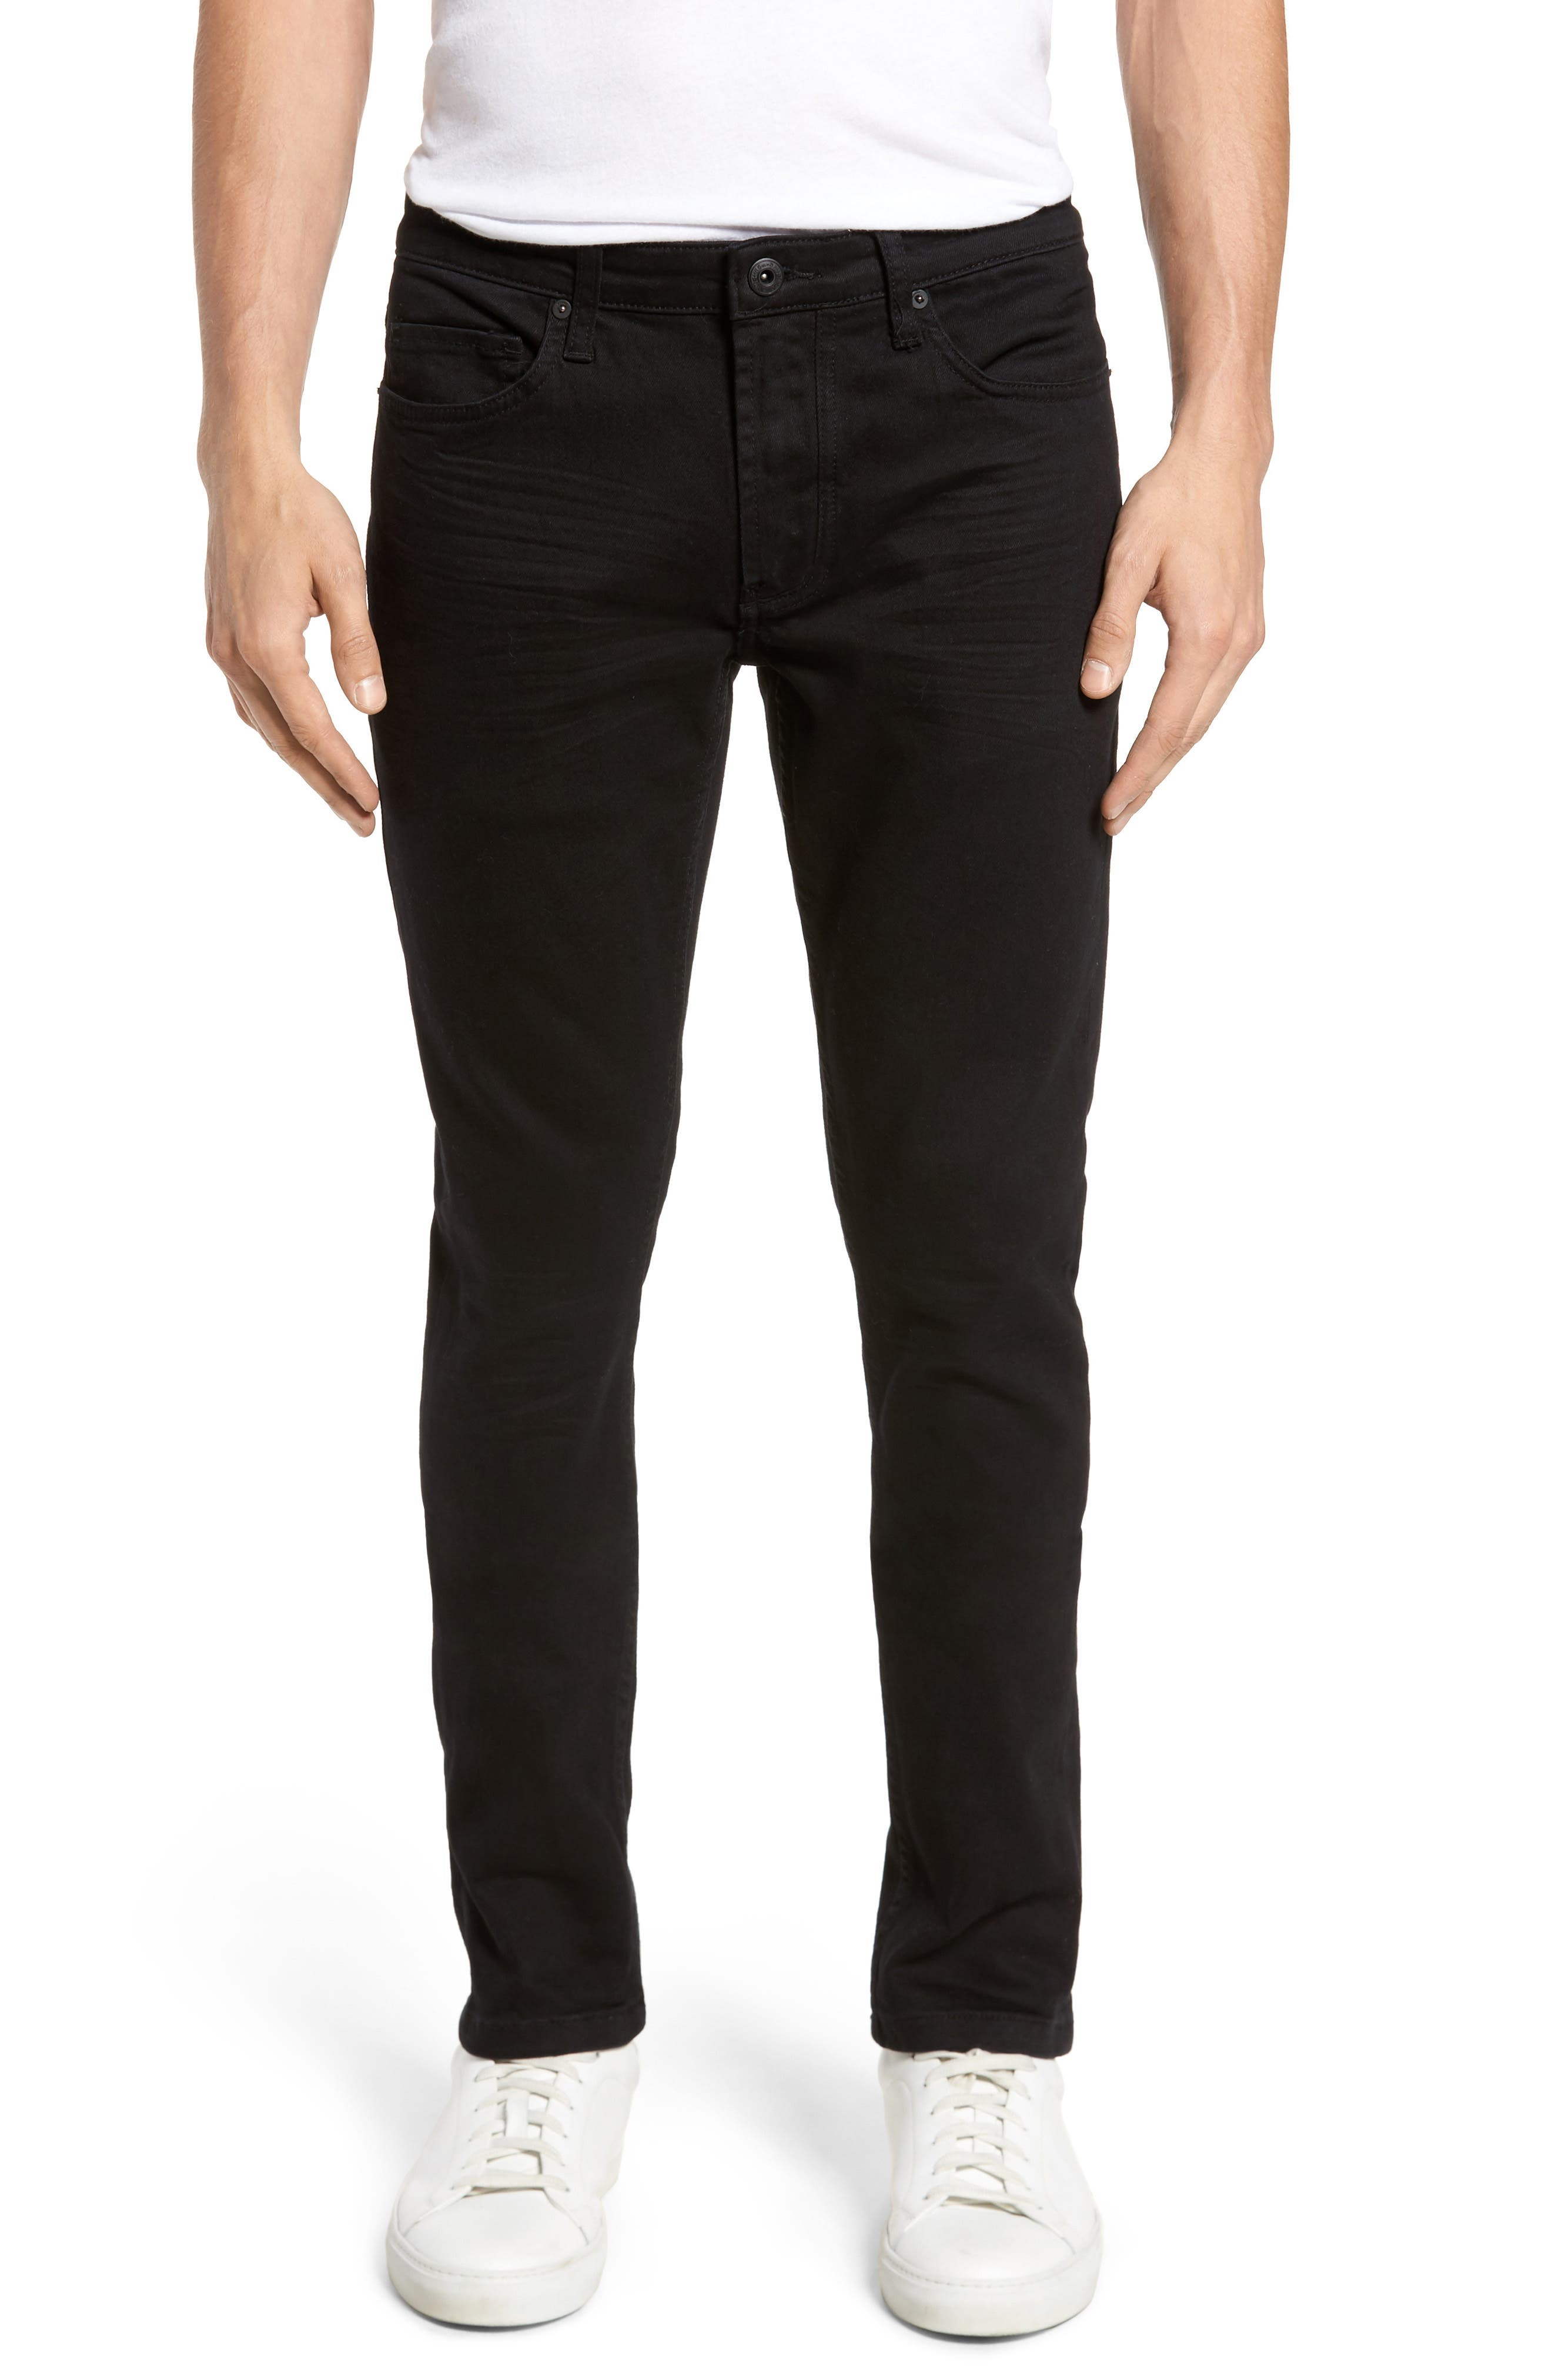 Horatio Skinny Fit Jeans,                         Main,                         color, High Q